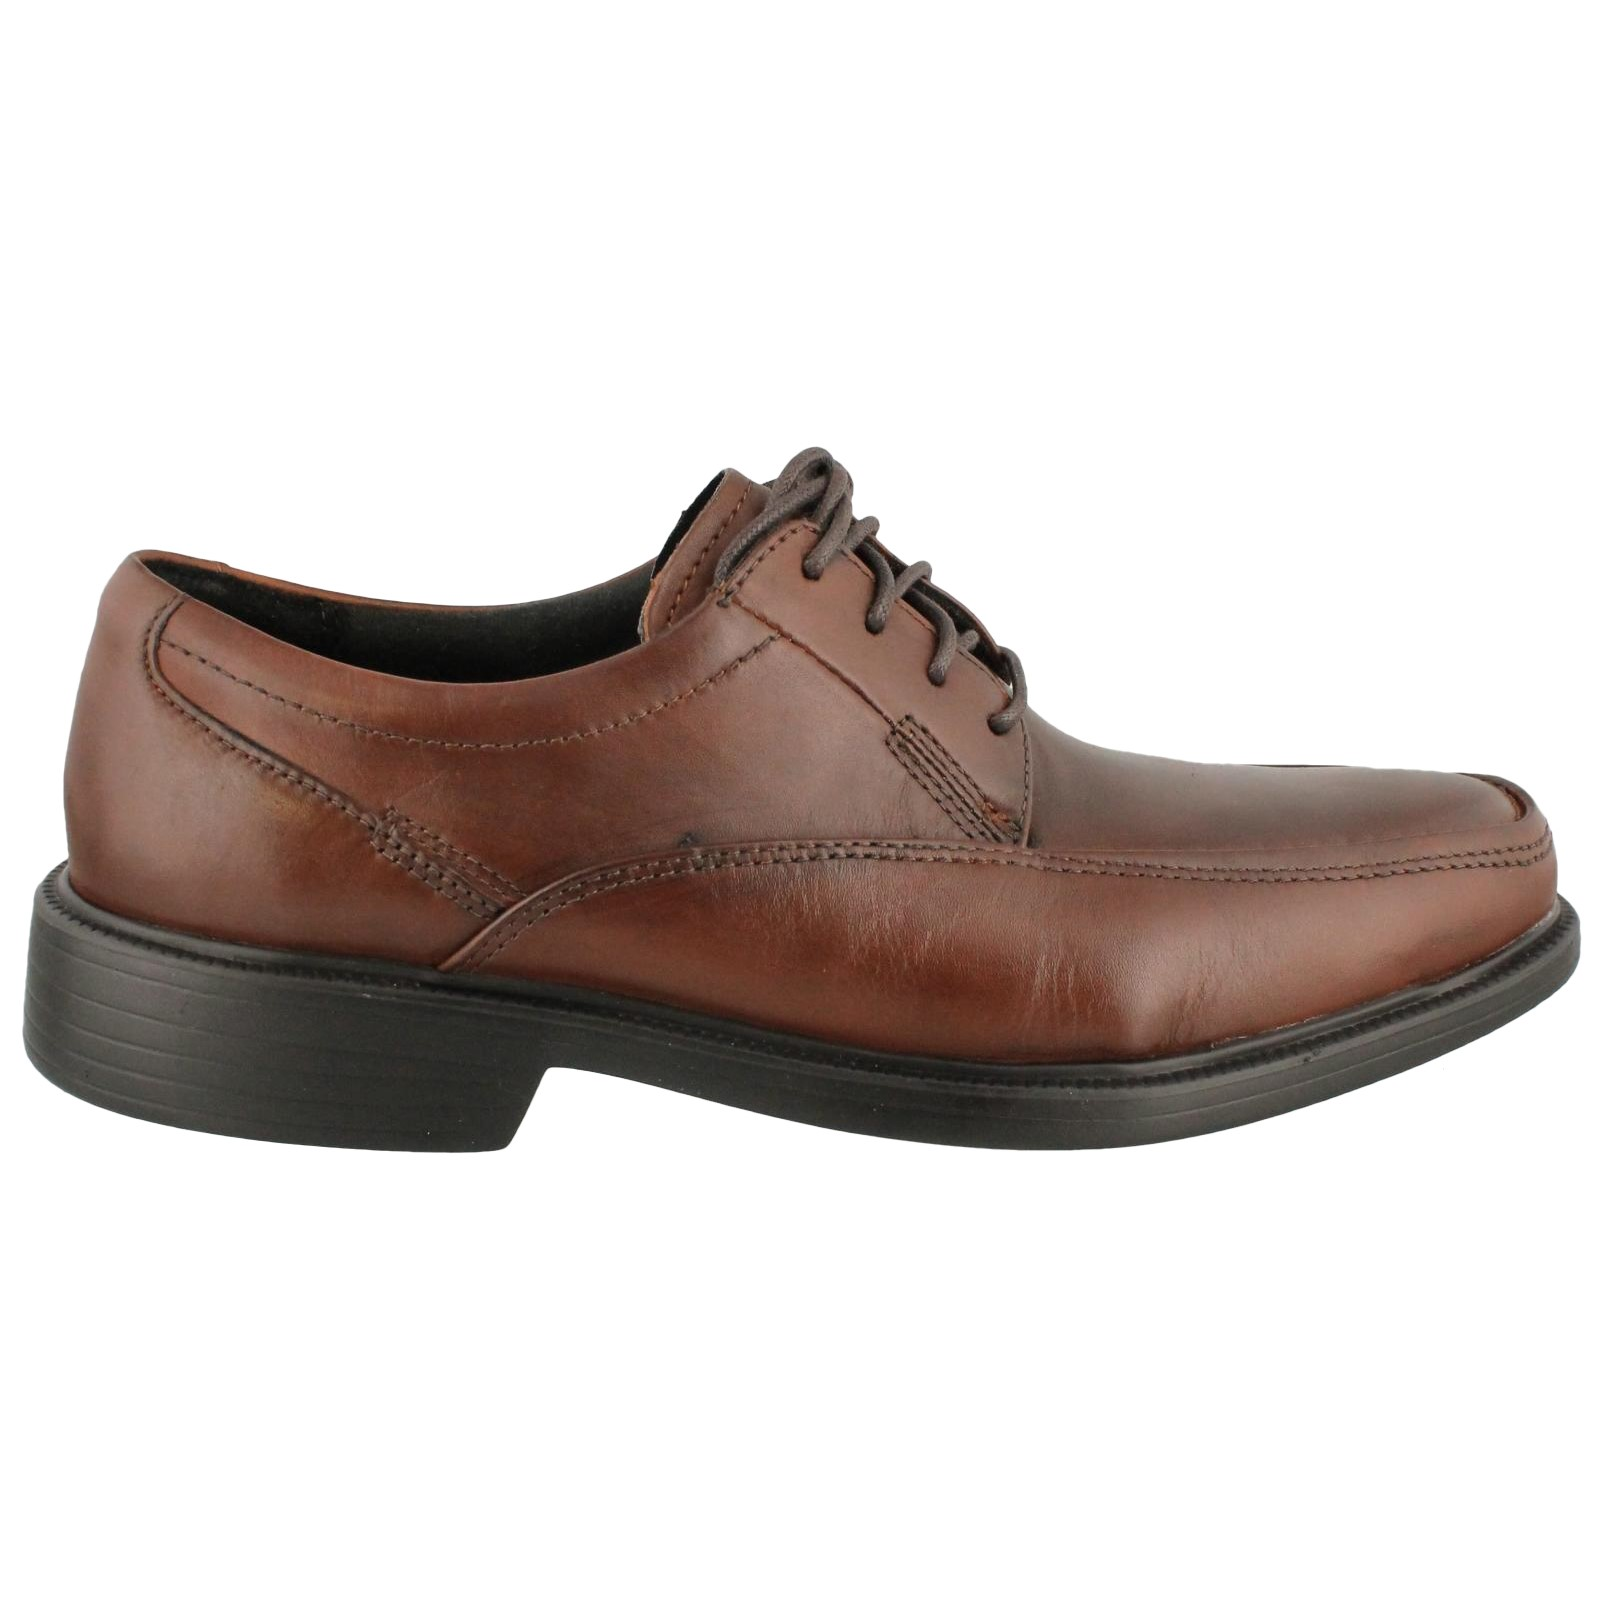 Men's Bostonian, Flexlite Ipswich Lace-up dress shoe